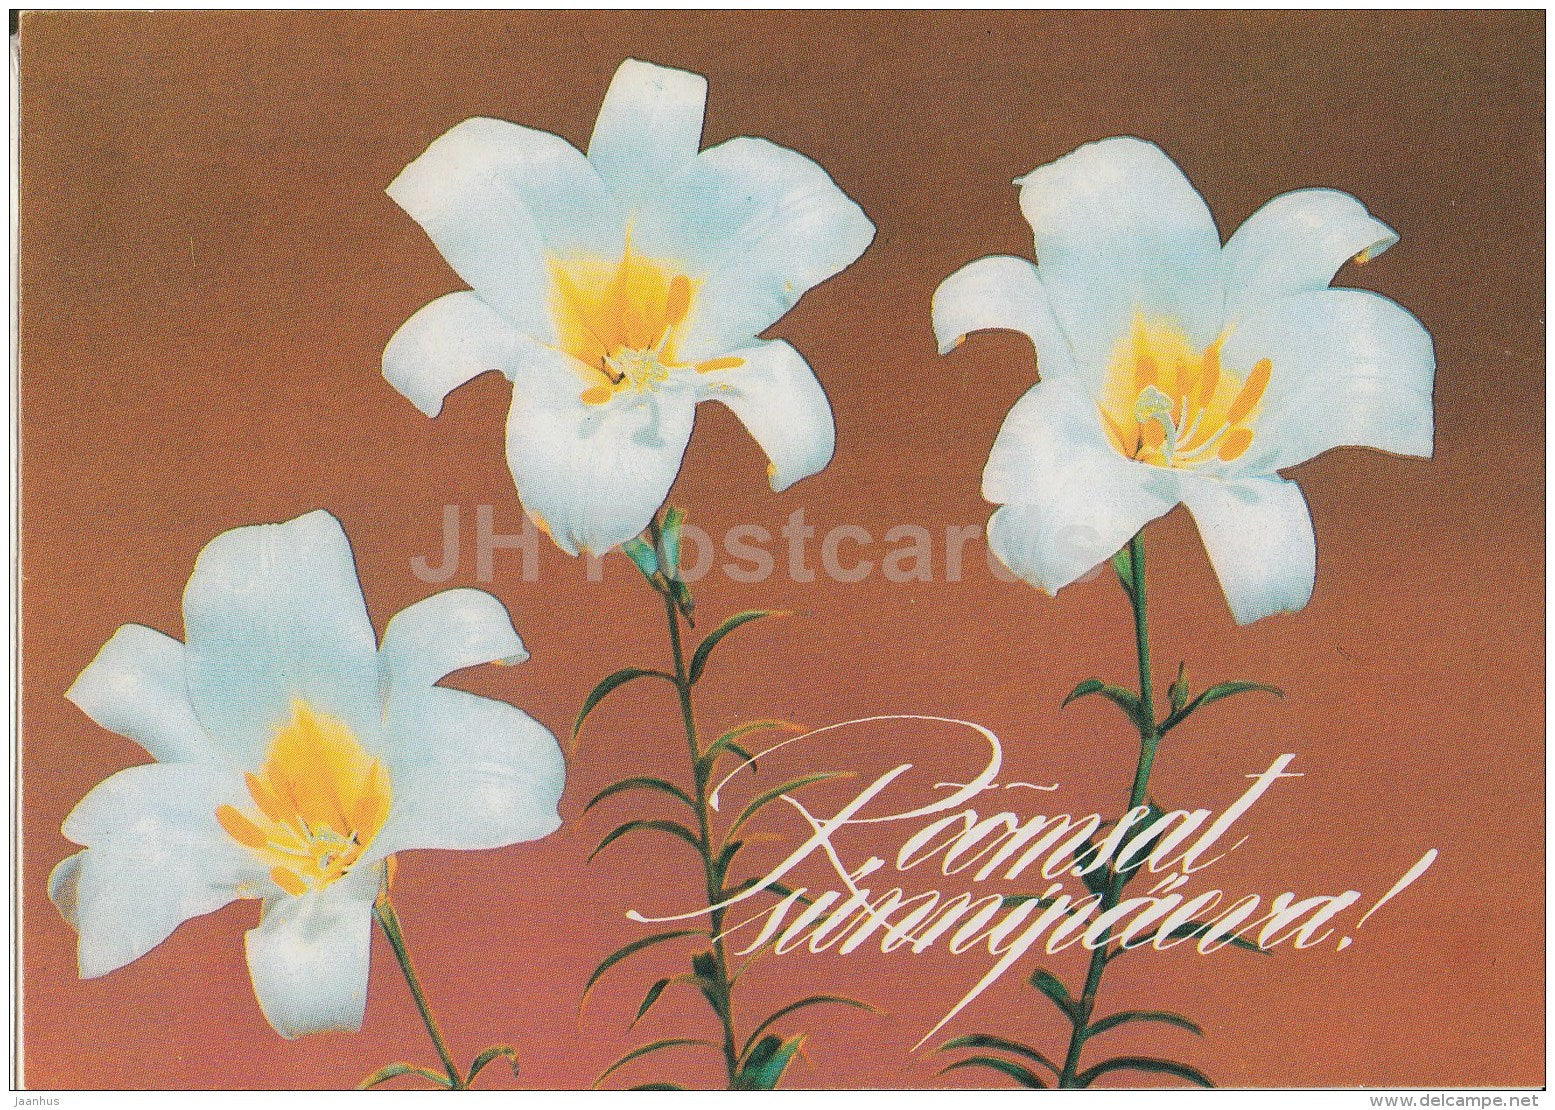 white lily - flowers - 1992 - Estonia - used - JH Postcards